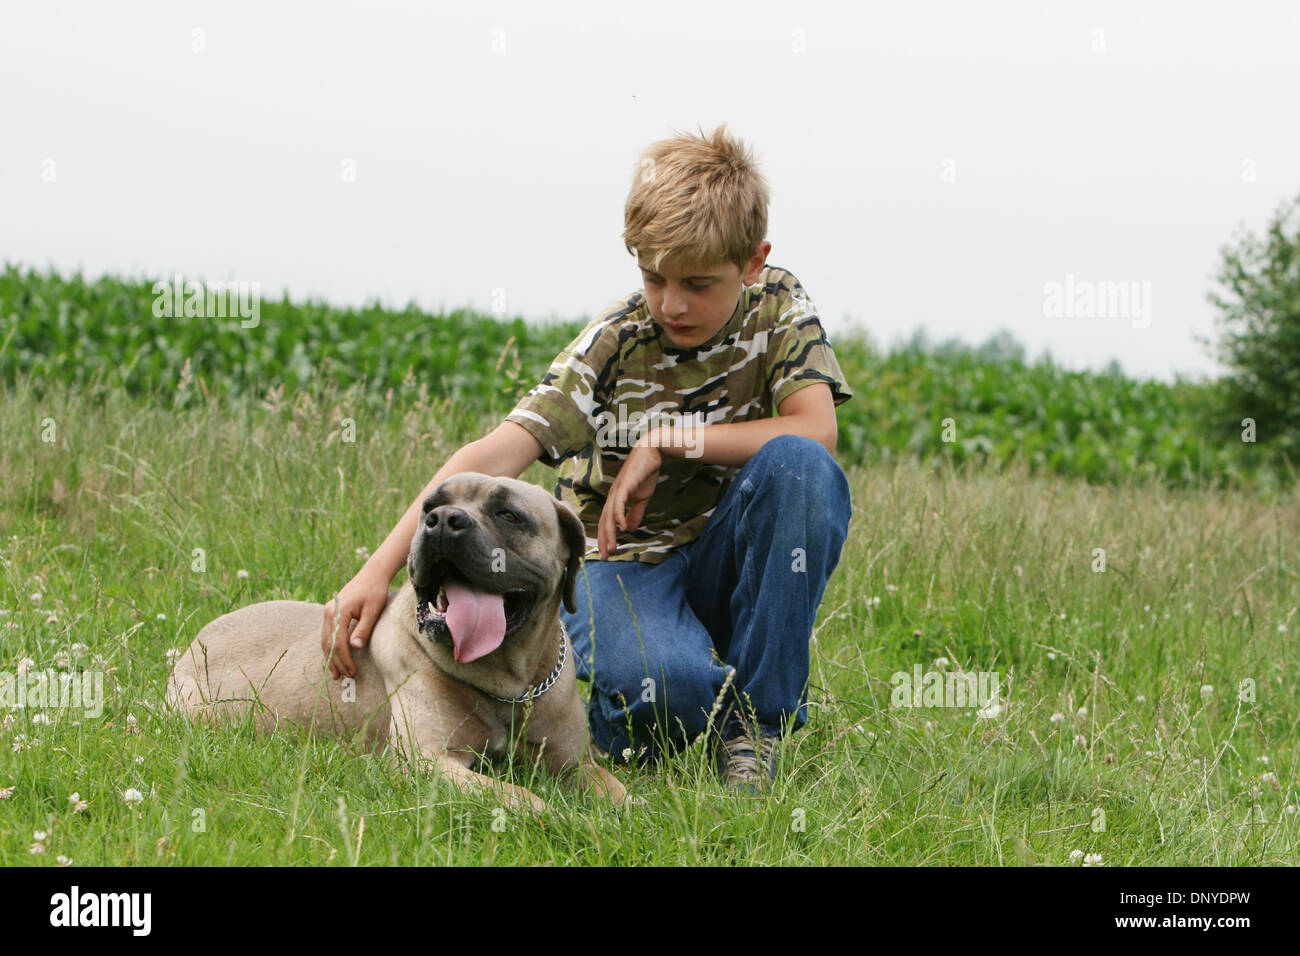 Dog Cane Corso / Italian Mastiff  adult and a boy - Stock Image